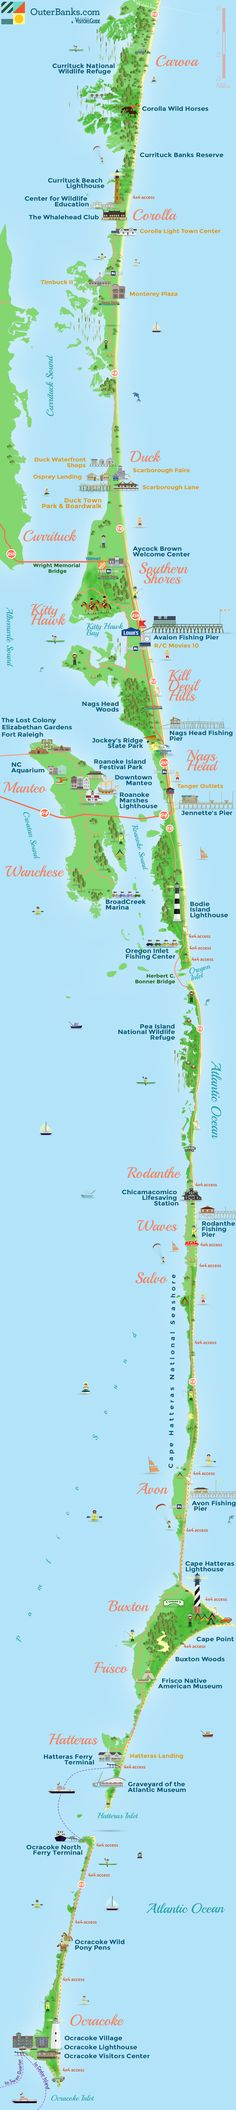 Outer Banks Map - a string of peninsulas and barrier islands separating the Atlantic Ocean from mainland North Carolina Outer Banks North Carolina, Outer Banks Nc, Outer Banks Vacation, North Carolina Homes, Vacation Places, Vacation Spots, Places To Travel, Places To See, Travel Things